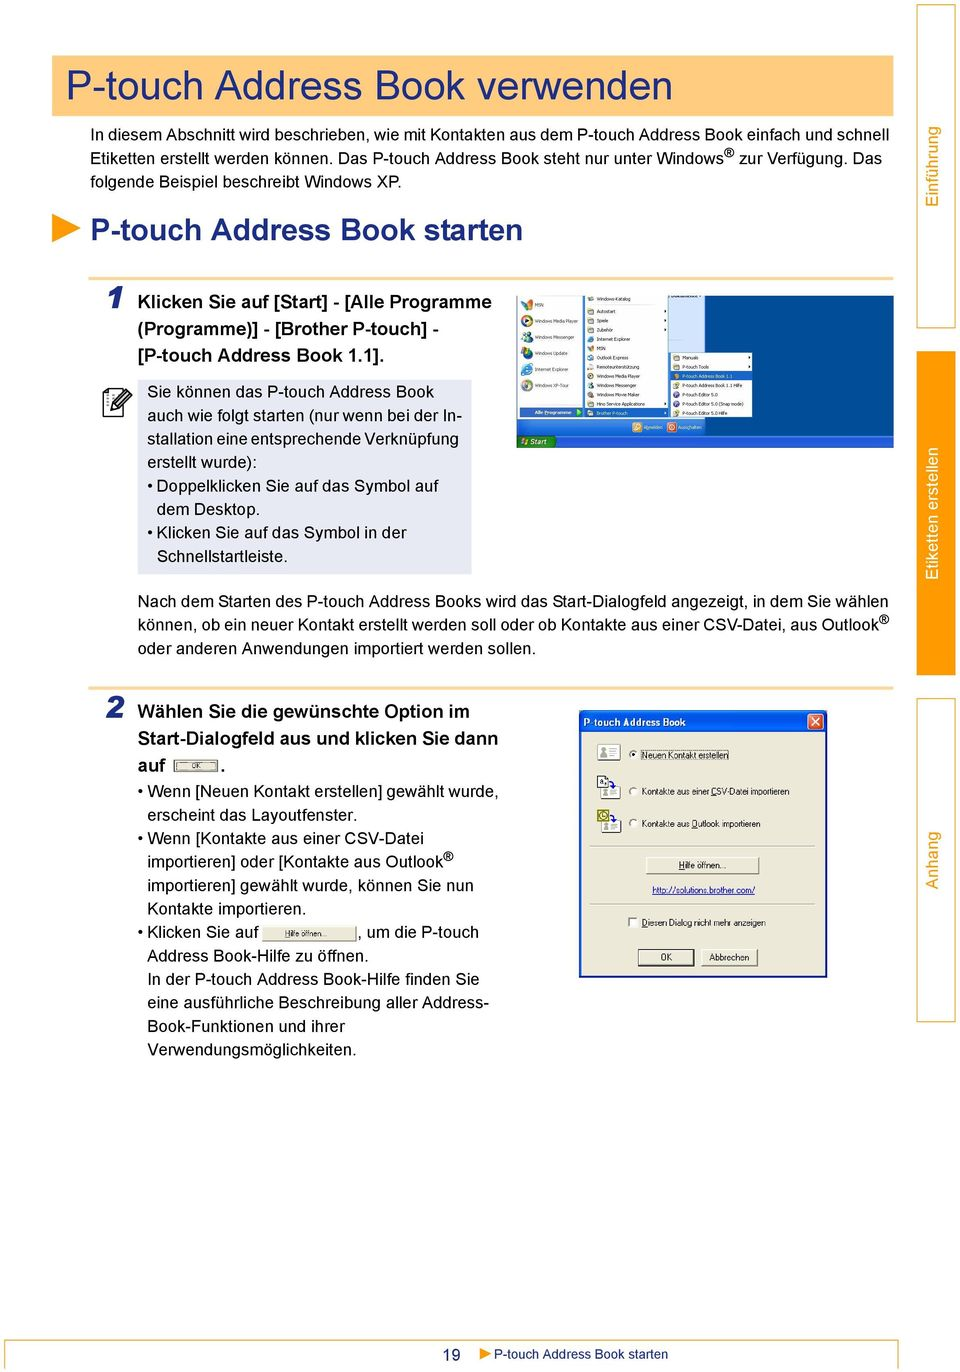 P-touch Address Book starten 1 Klicken Sie auf [Start] - [Alle Programme (Programme)] - [Brother P-touch] - [P-touch Address Book 1.1].